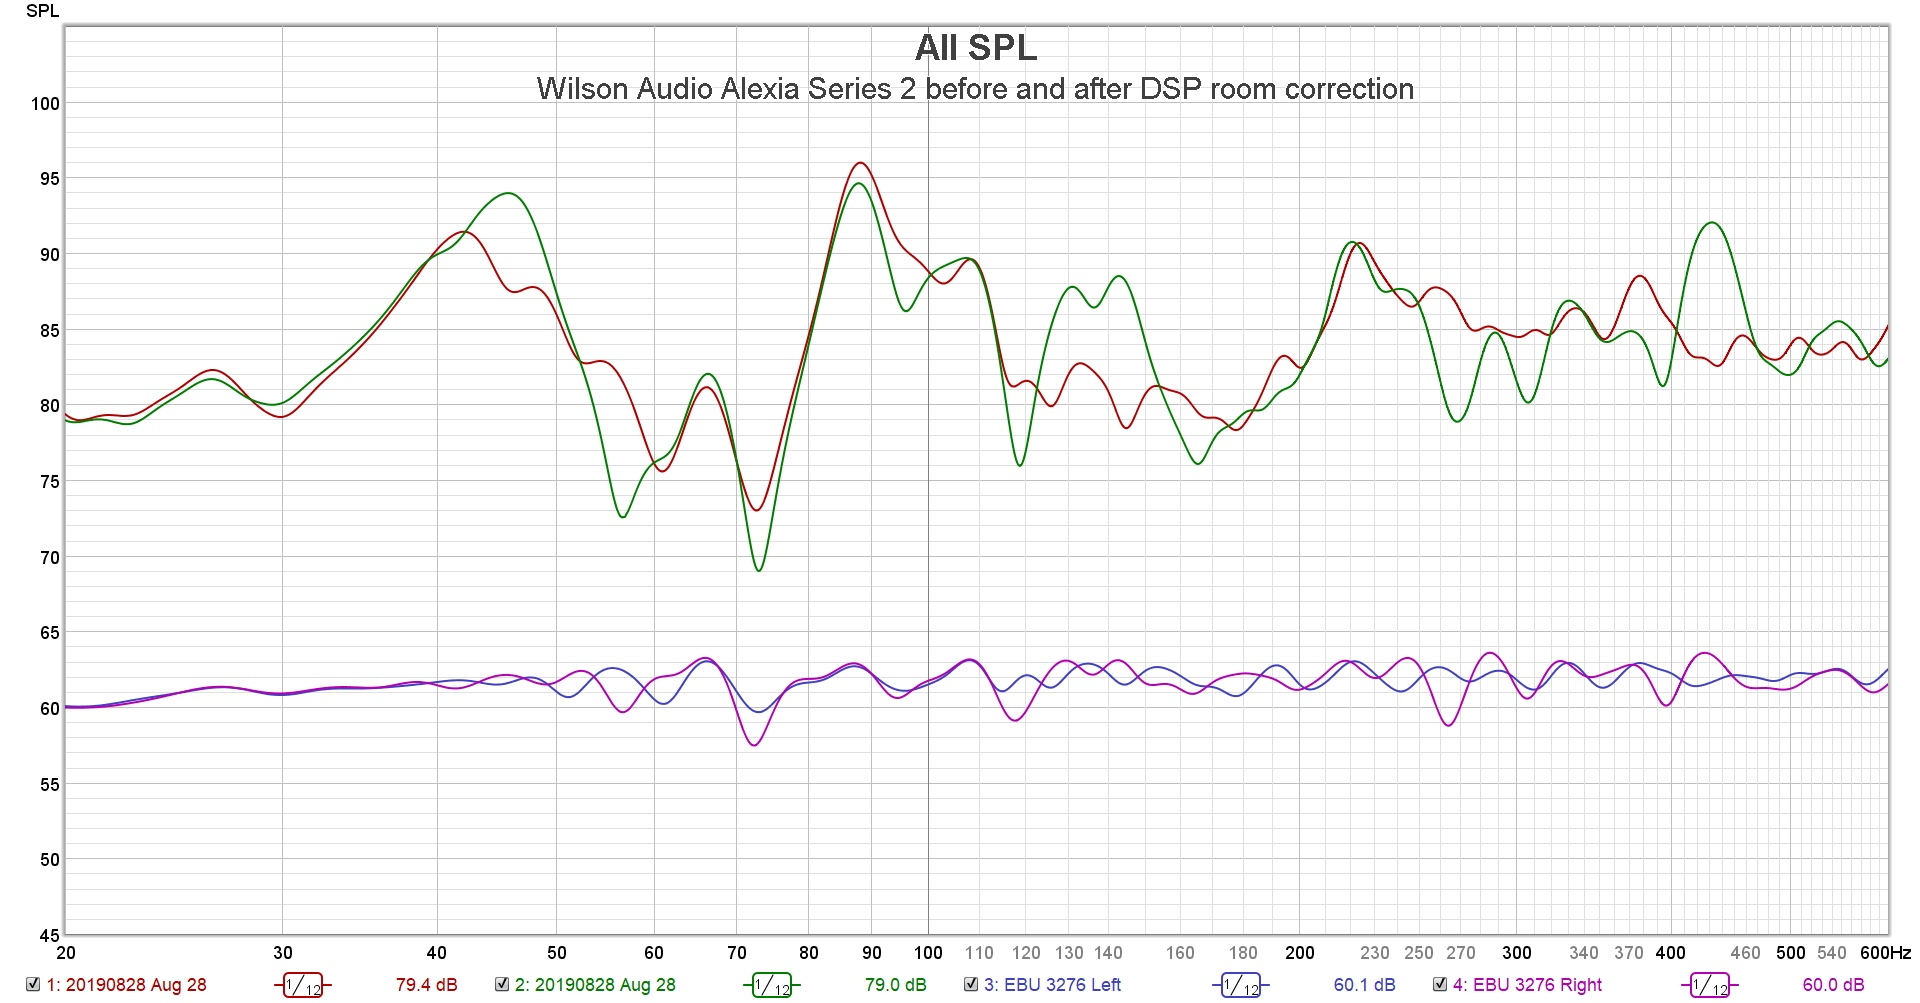 Wilson Audio Alexia Series 2 before and after DSP room correction.jpg